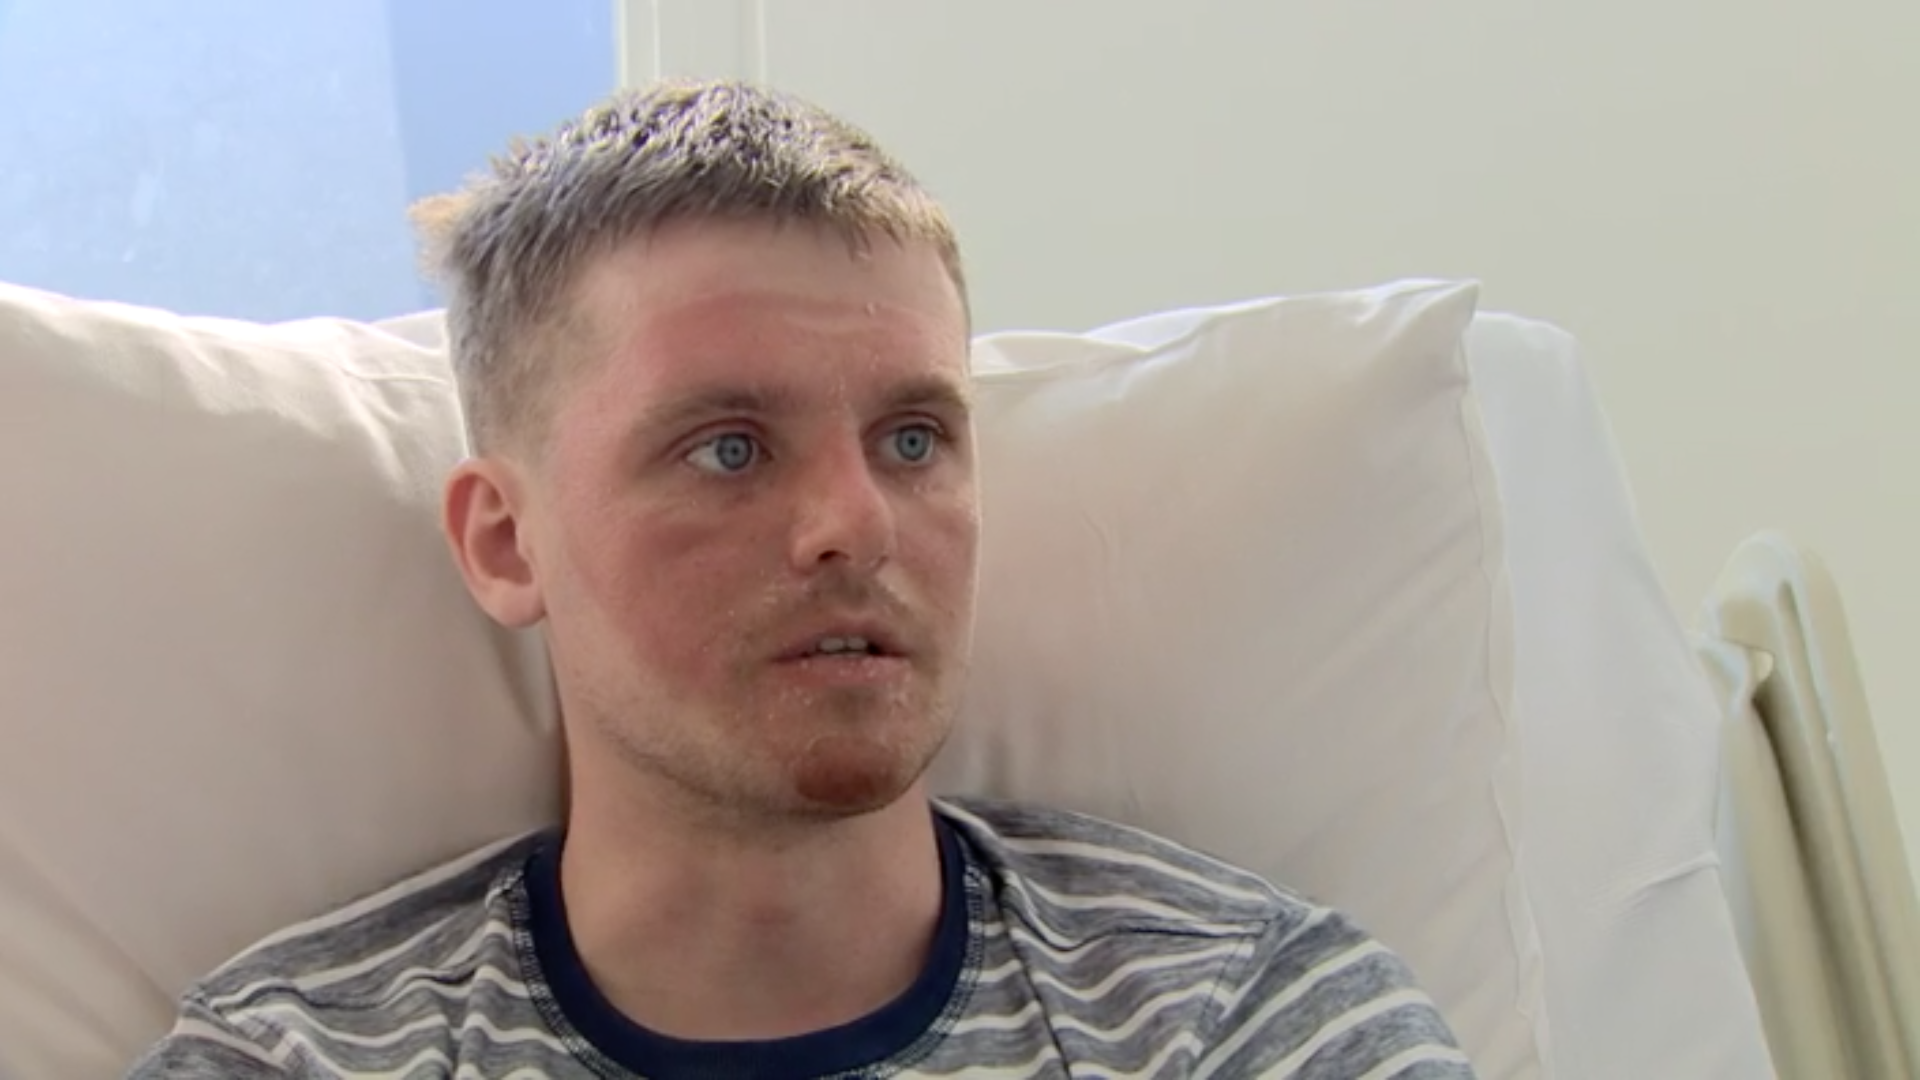 Matt was emotional, fighting back tears, as he spoke with the BBC from his hospital bed in Belfast.